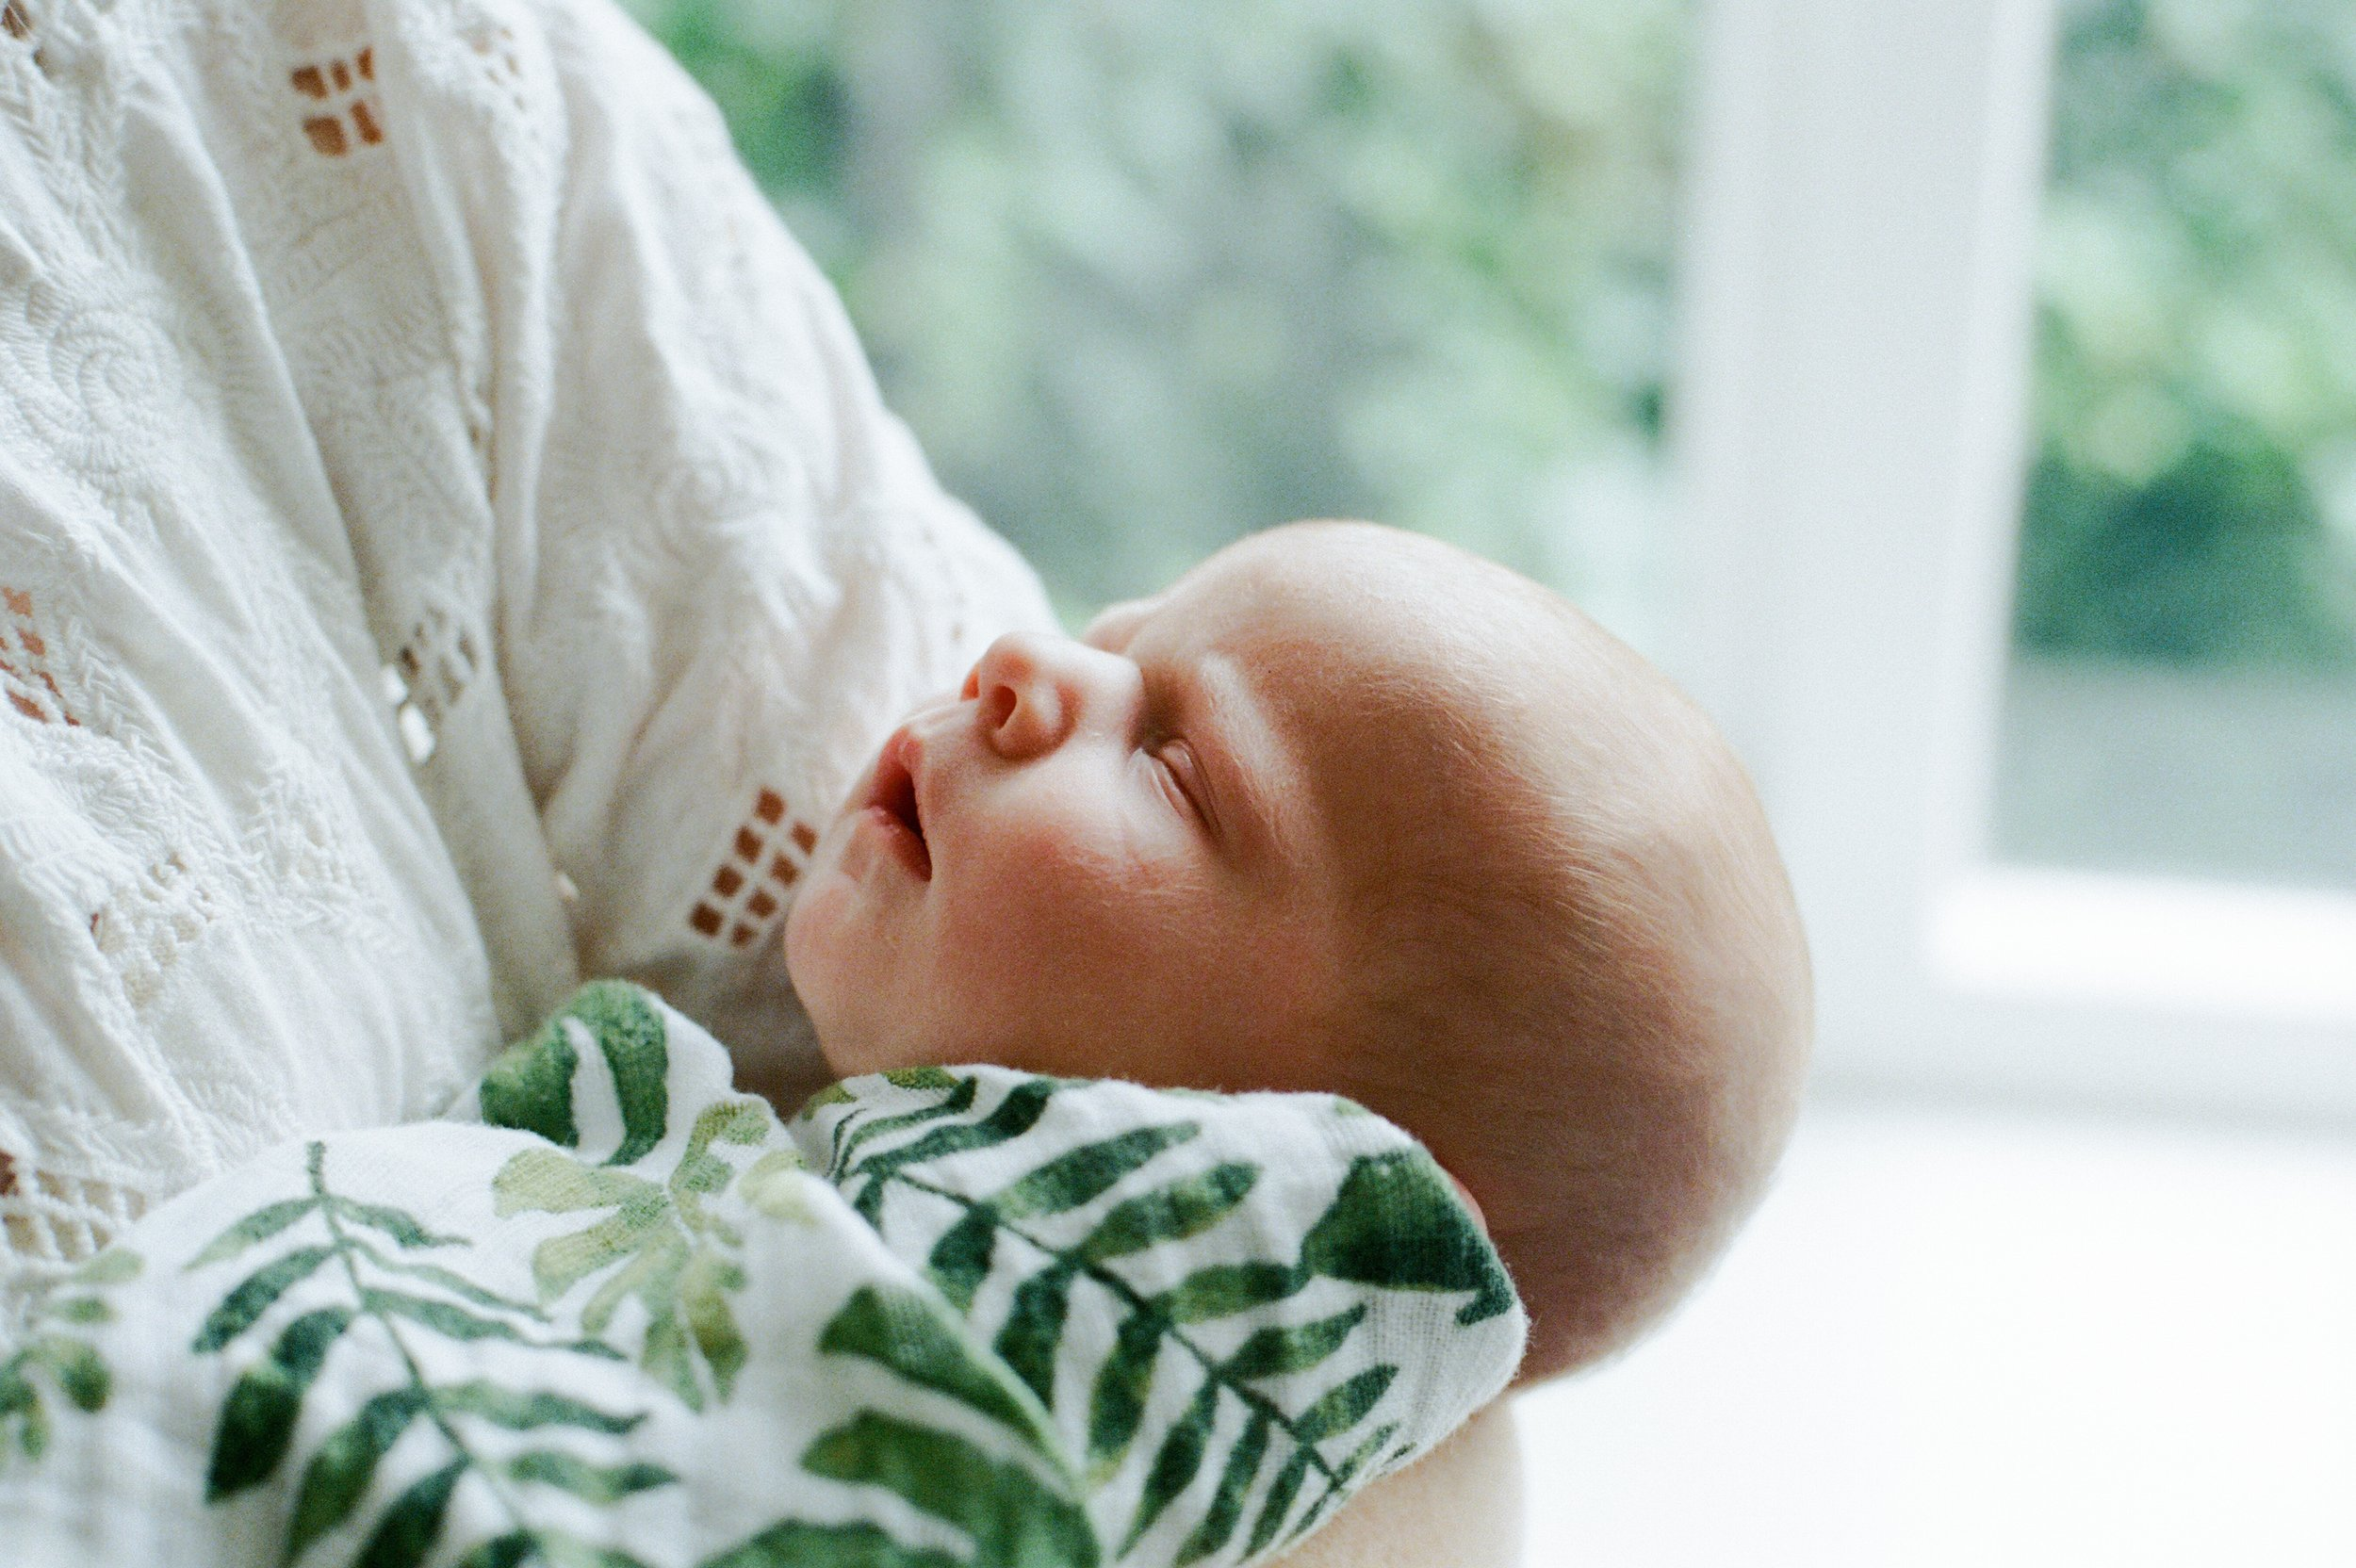 london_natural_light_baby_photographer_1.jpg